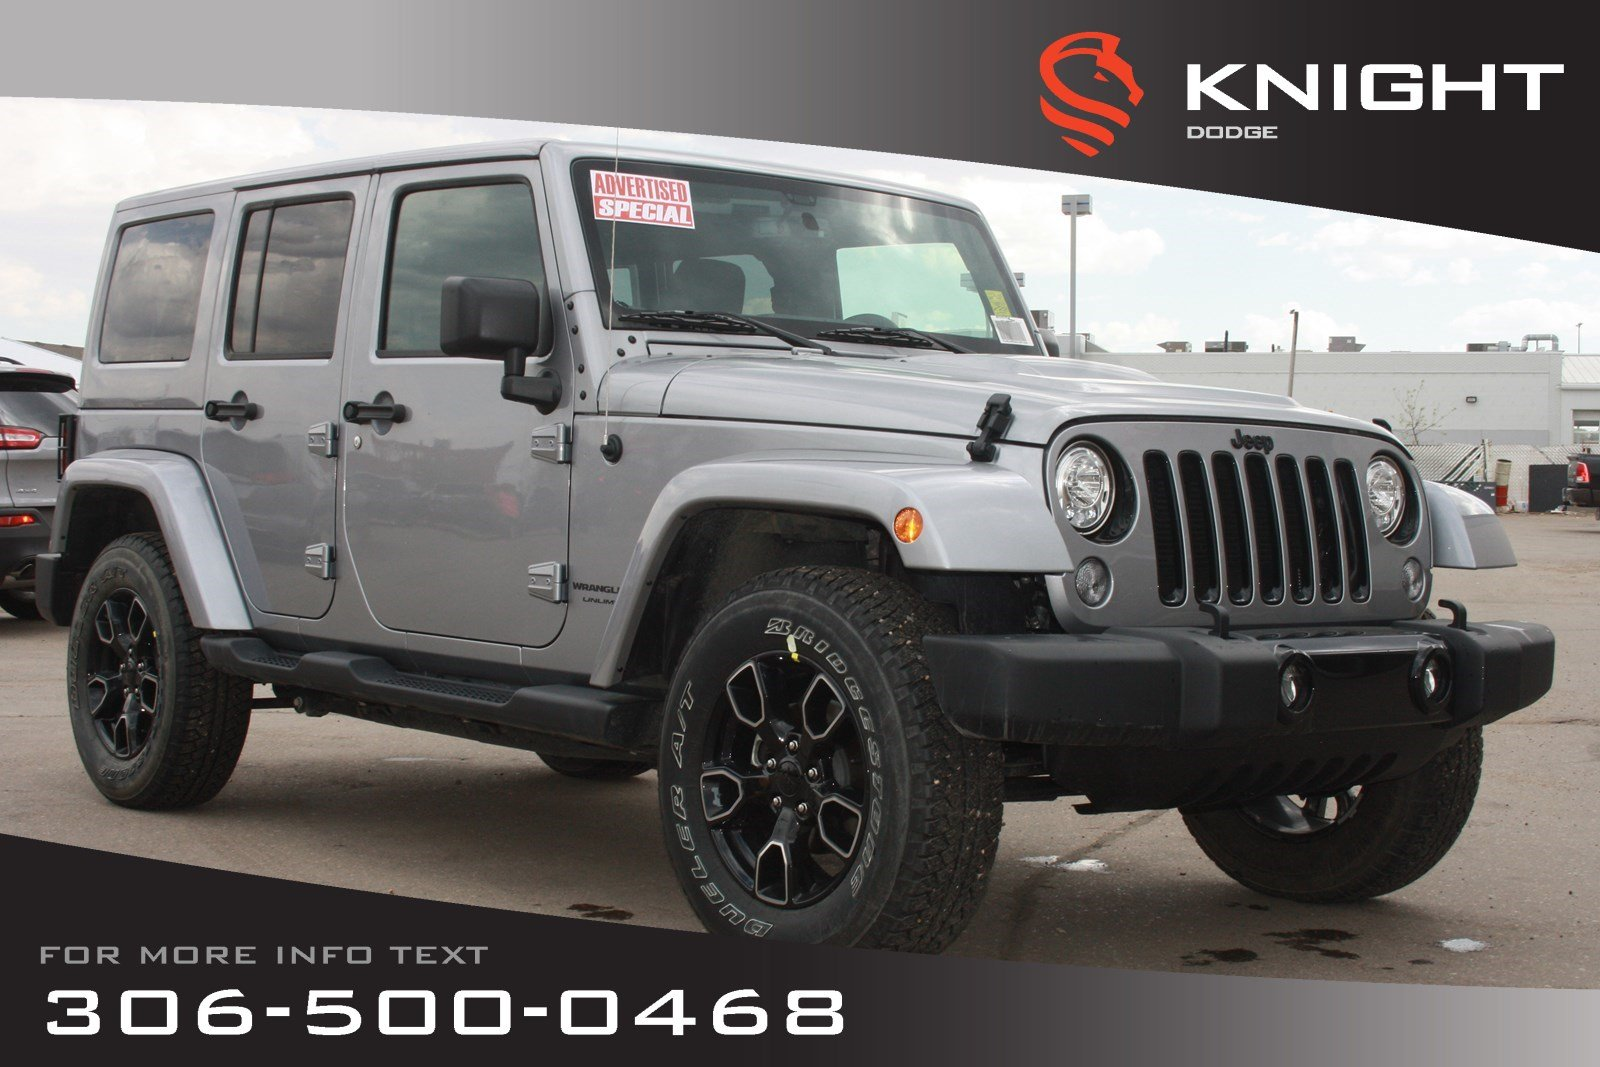 Jeep Wrangler Rims And Tire Packages >> New 2018 Jeep Wrangler Jk Unlimited Altitude Advertised Special Navigation Remote Start Max Tow Package 4wd Convertible